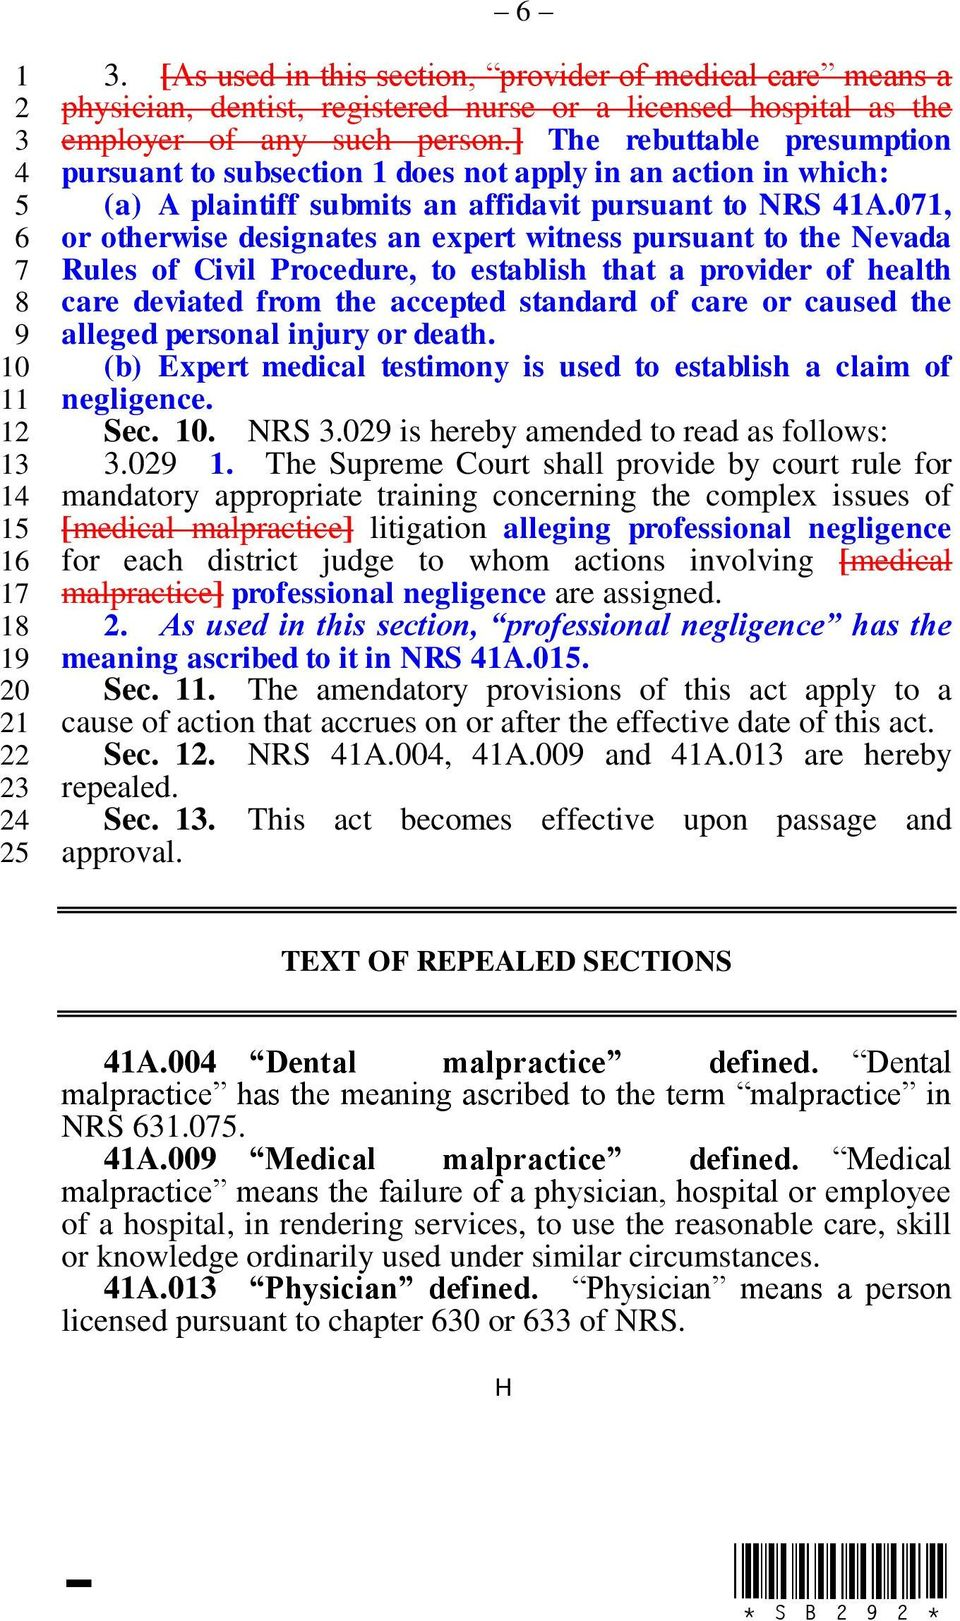 0, or otherwise designates an expert witness pursuant to the Nevada Rules of Civil Procedure, to establish that a provider of health care deviated from the accepted standard of care or caused the